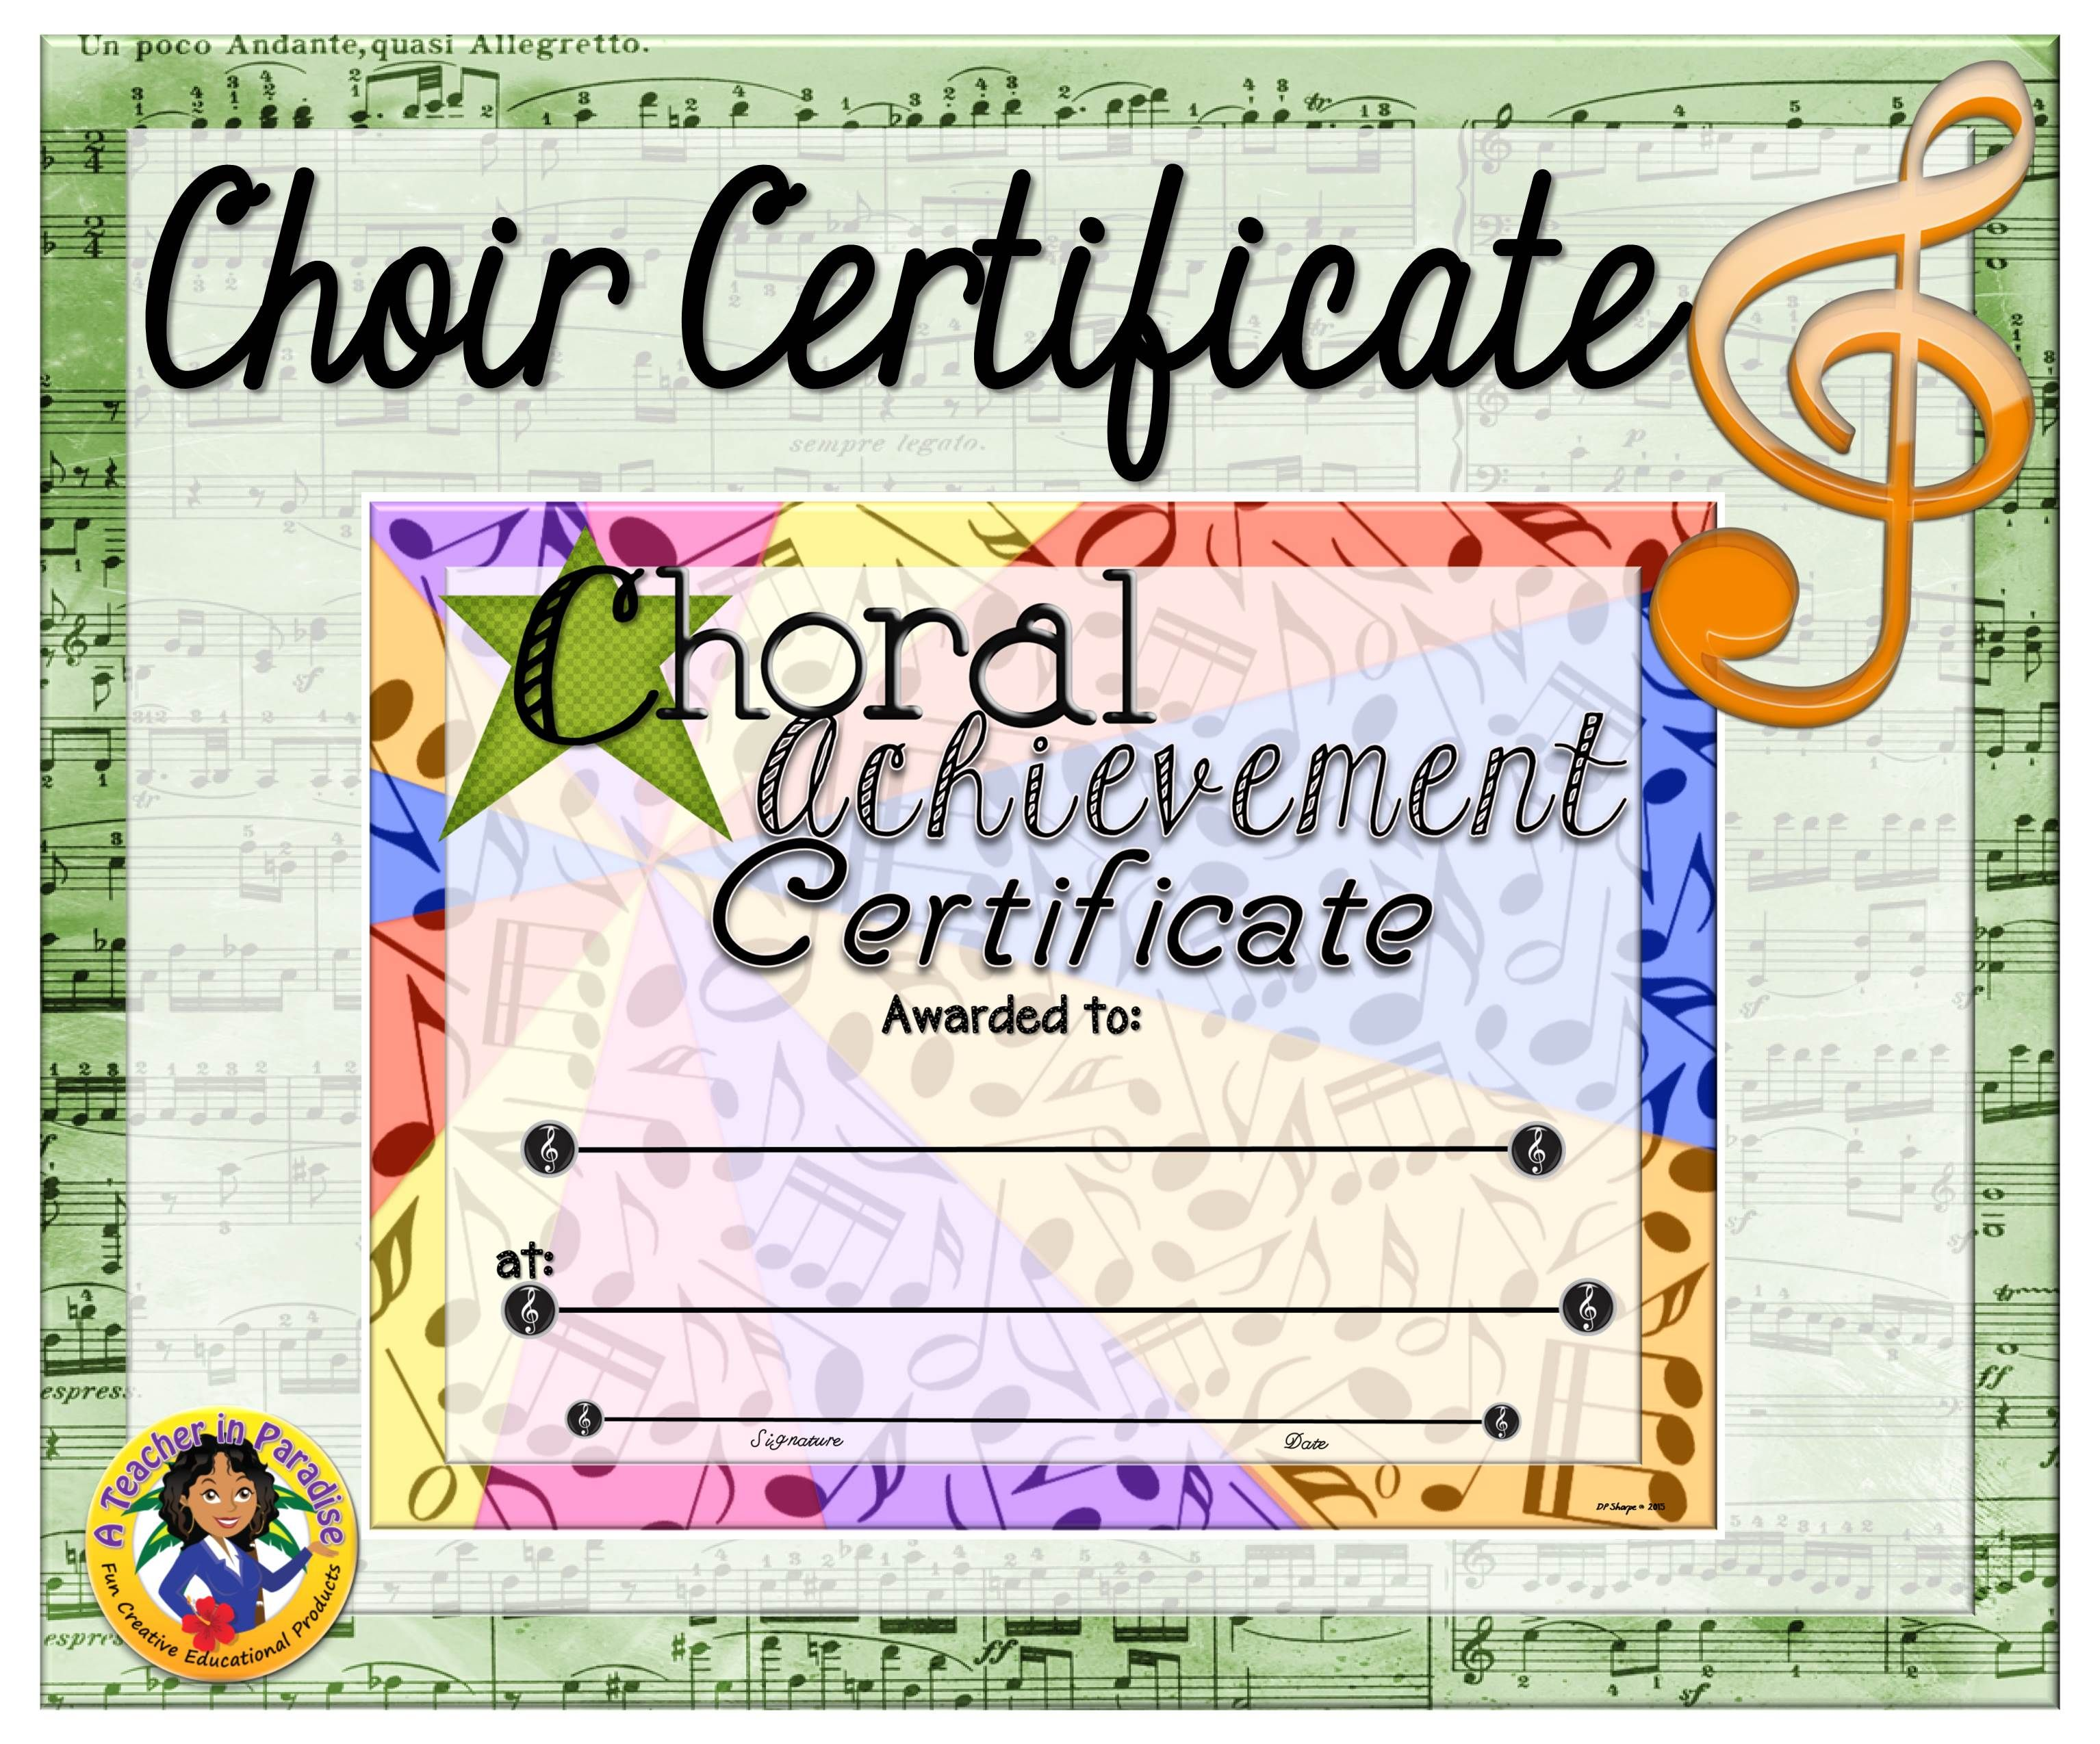 Choir Certificate 5